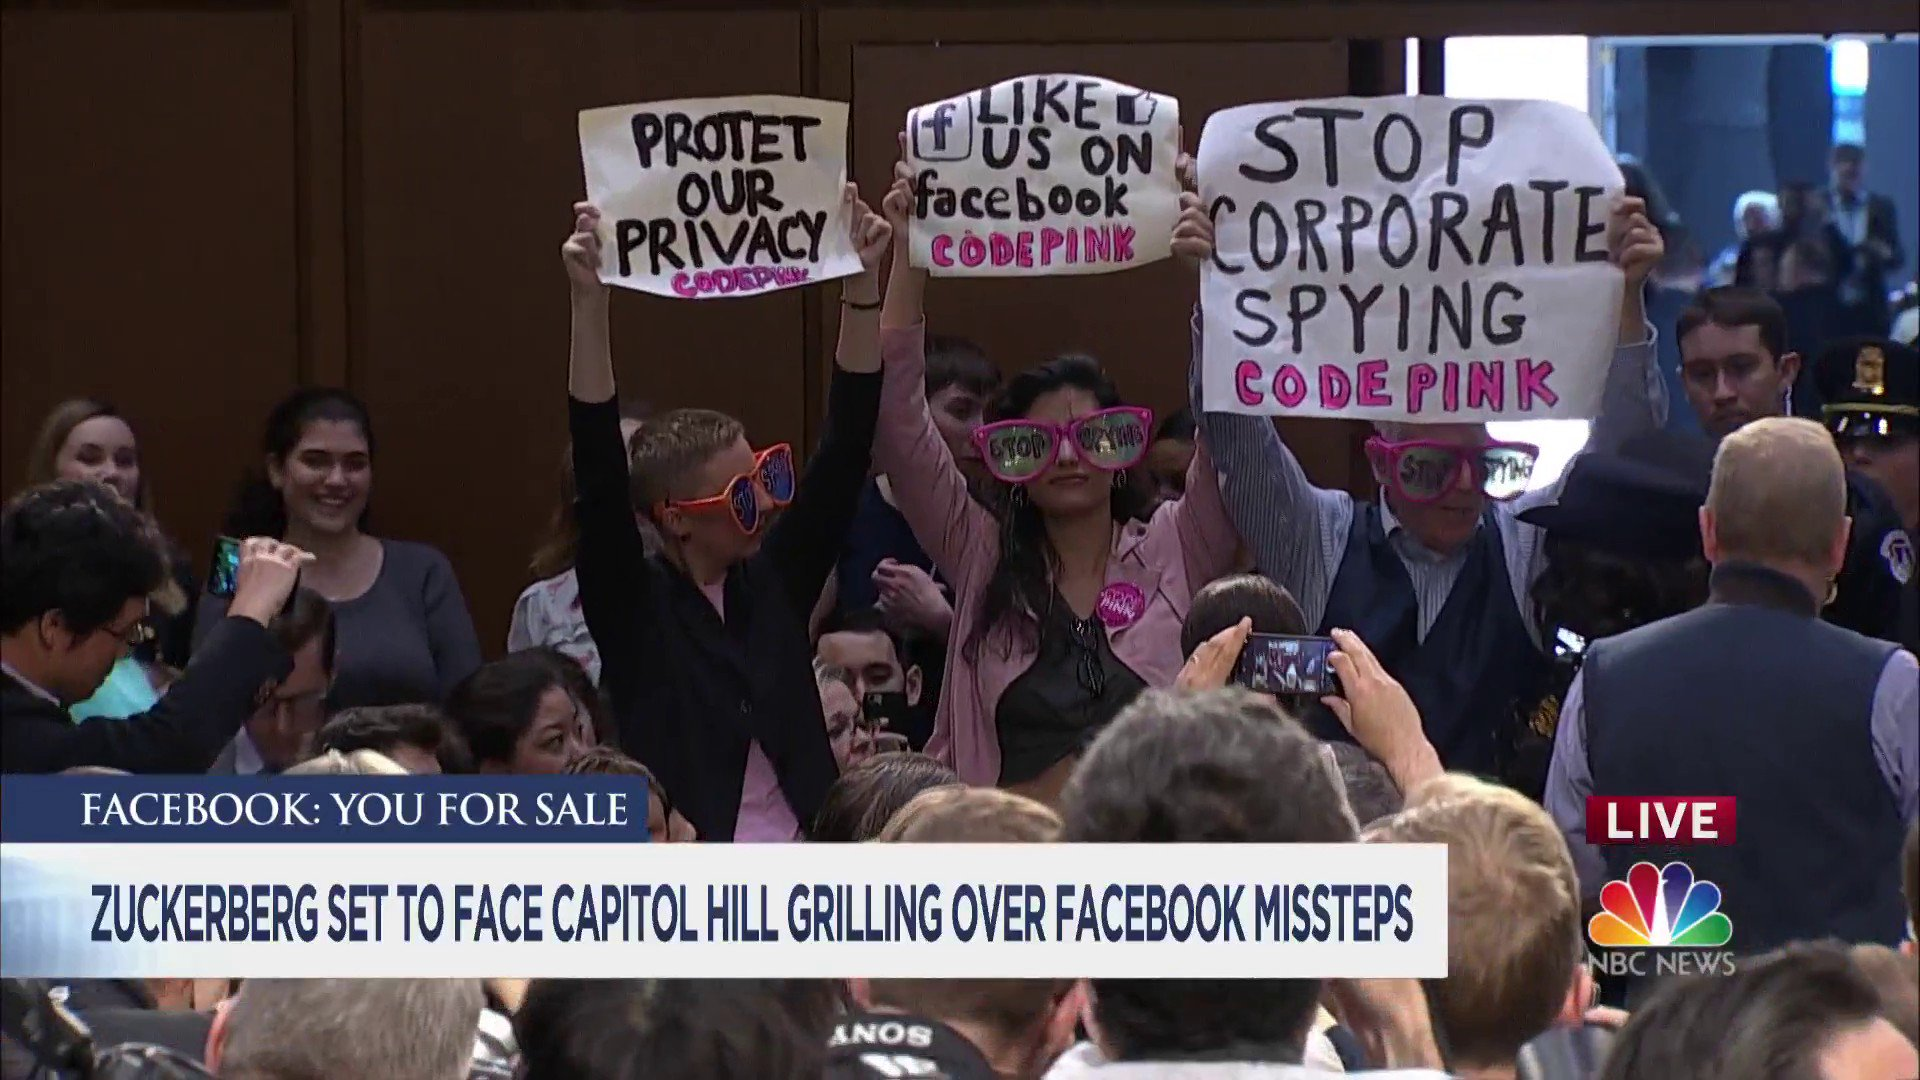 @frankthorp Demonstrators stand and protest ahead of Zuckerberg congressional hearing. https://t.co/q55BstfZ1p https://t.co/ehsfogicE1